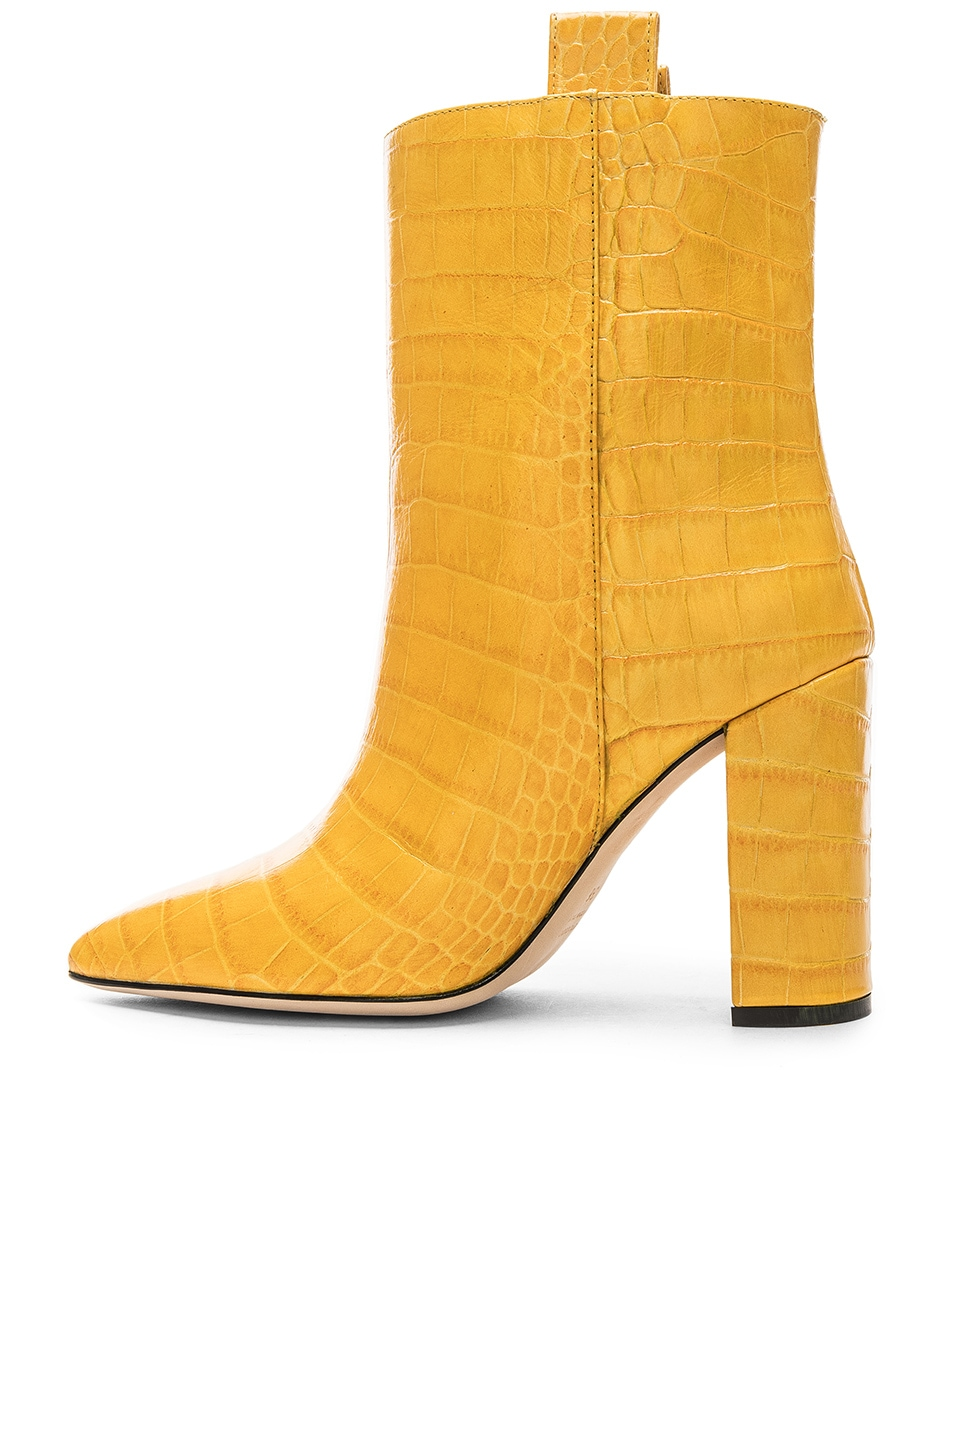 Image 5 of Paris Texas Ankle Boot in Yellow Croc